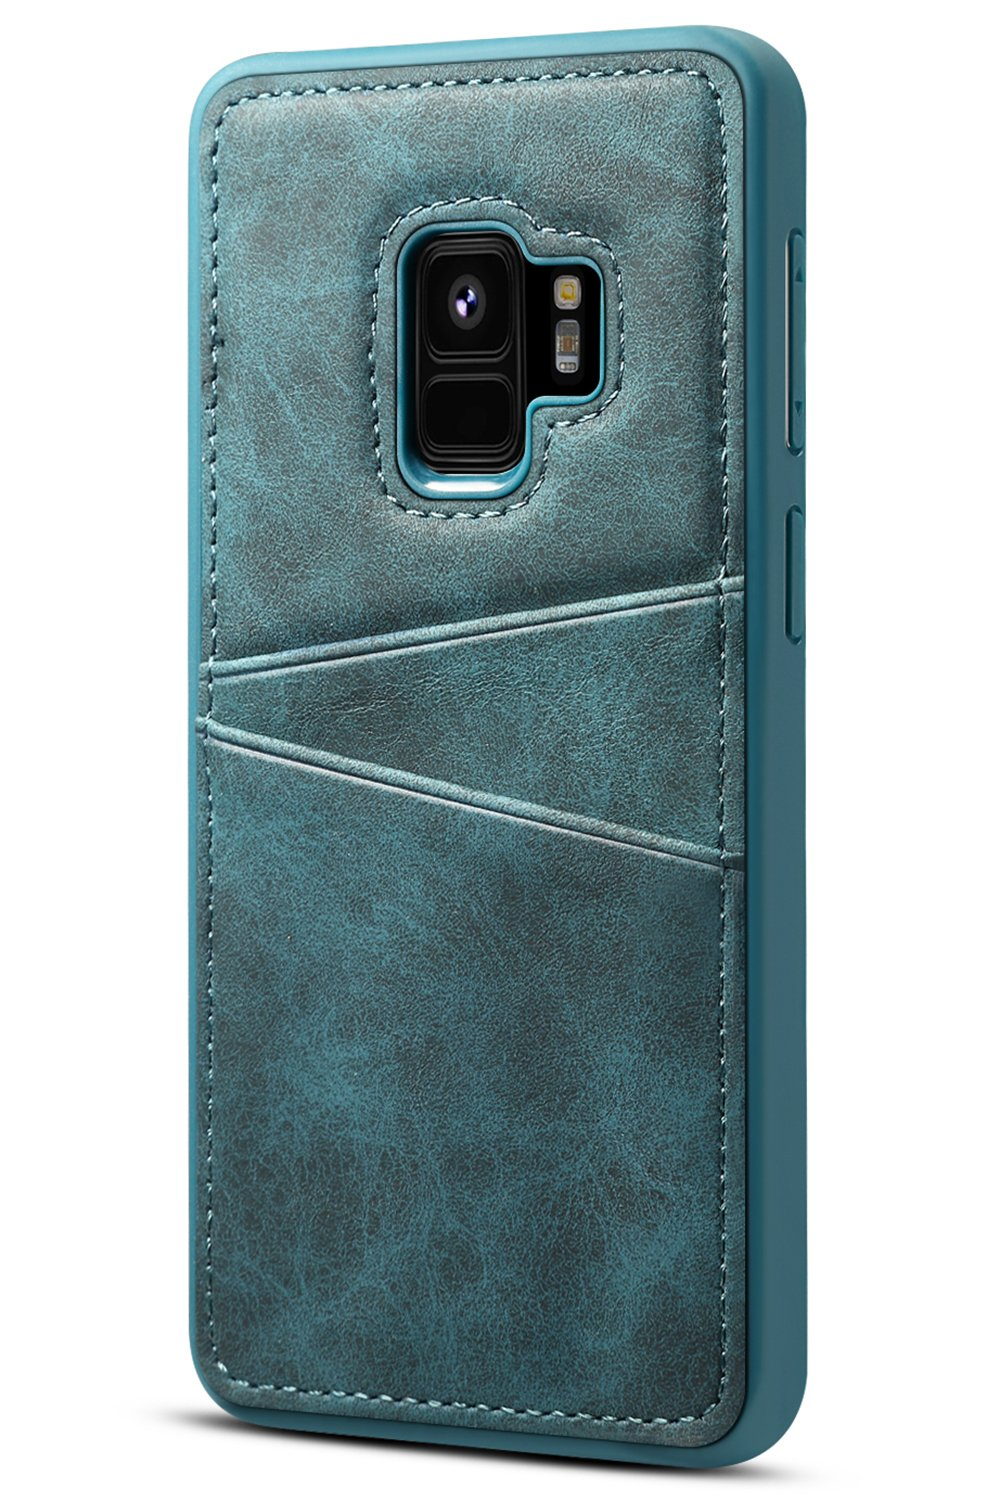 Galaxy S9 Wallet Case SAVYOU Slim Vintage Synthetic Leather Card Case with 2 Card/ID Holder Slots Simple Professional Executive Snap On Cover Blue